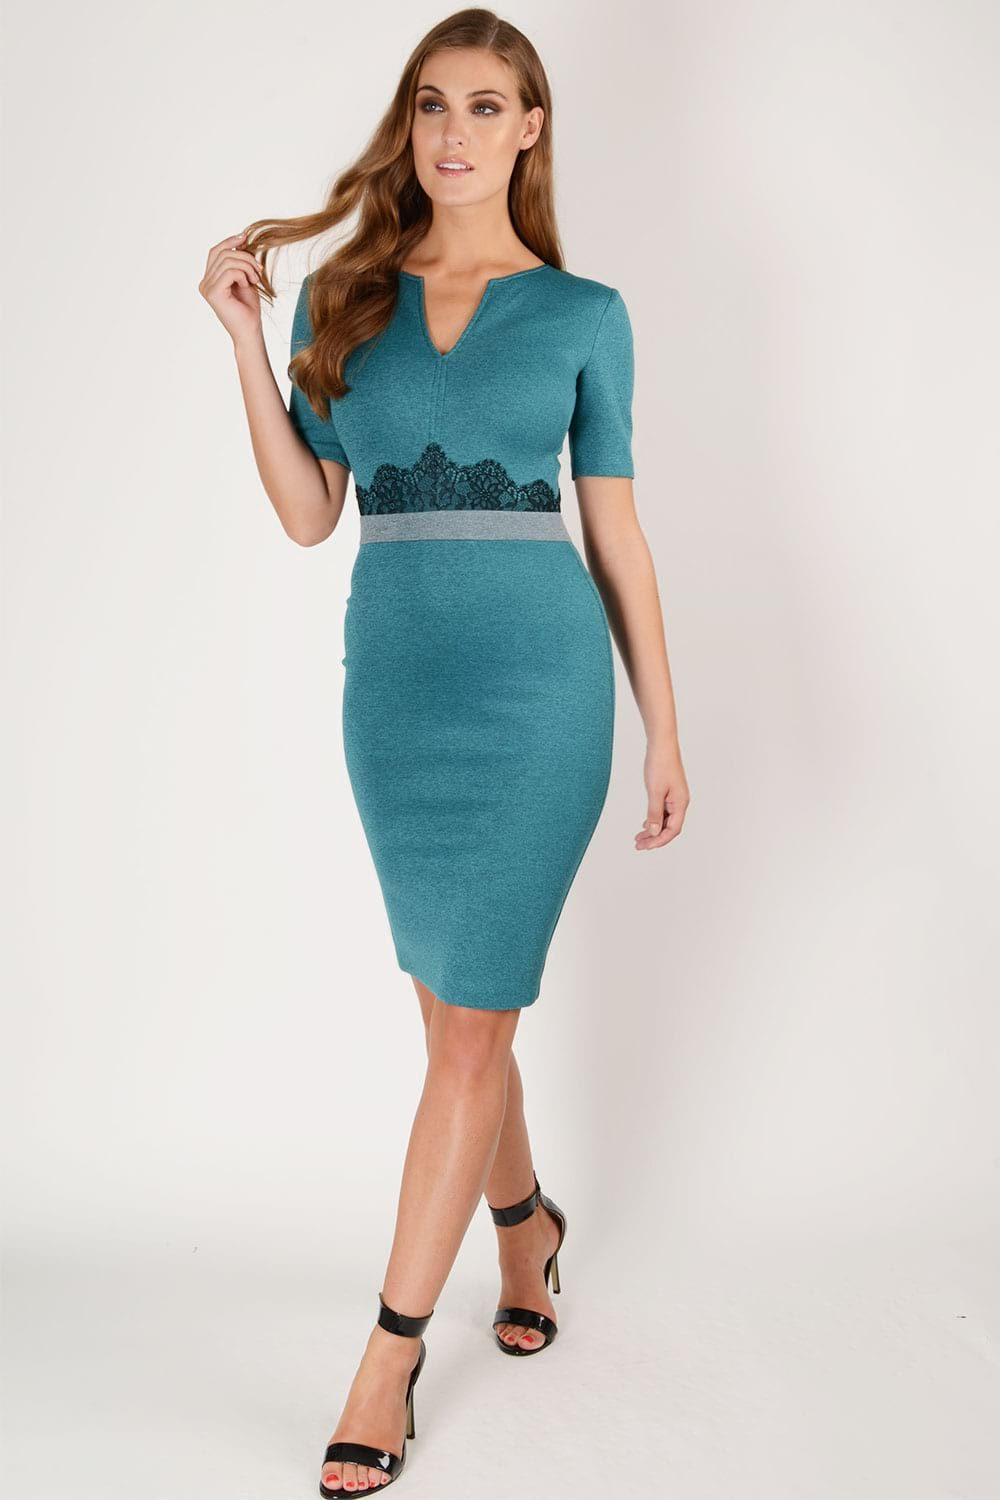 Hybrid Fashion Kate 1274 Neoprene Pencil Dress